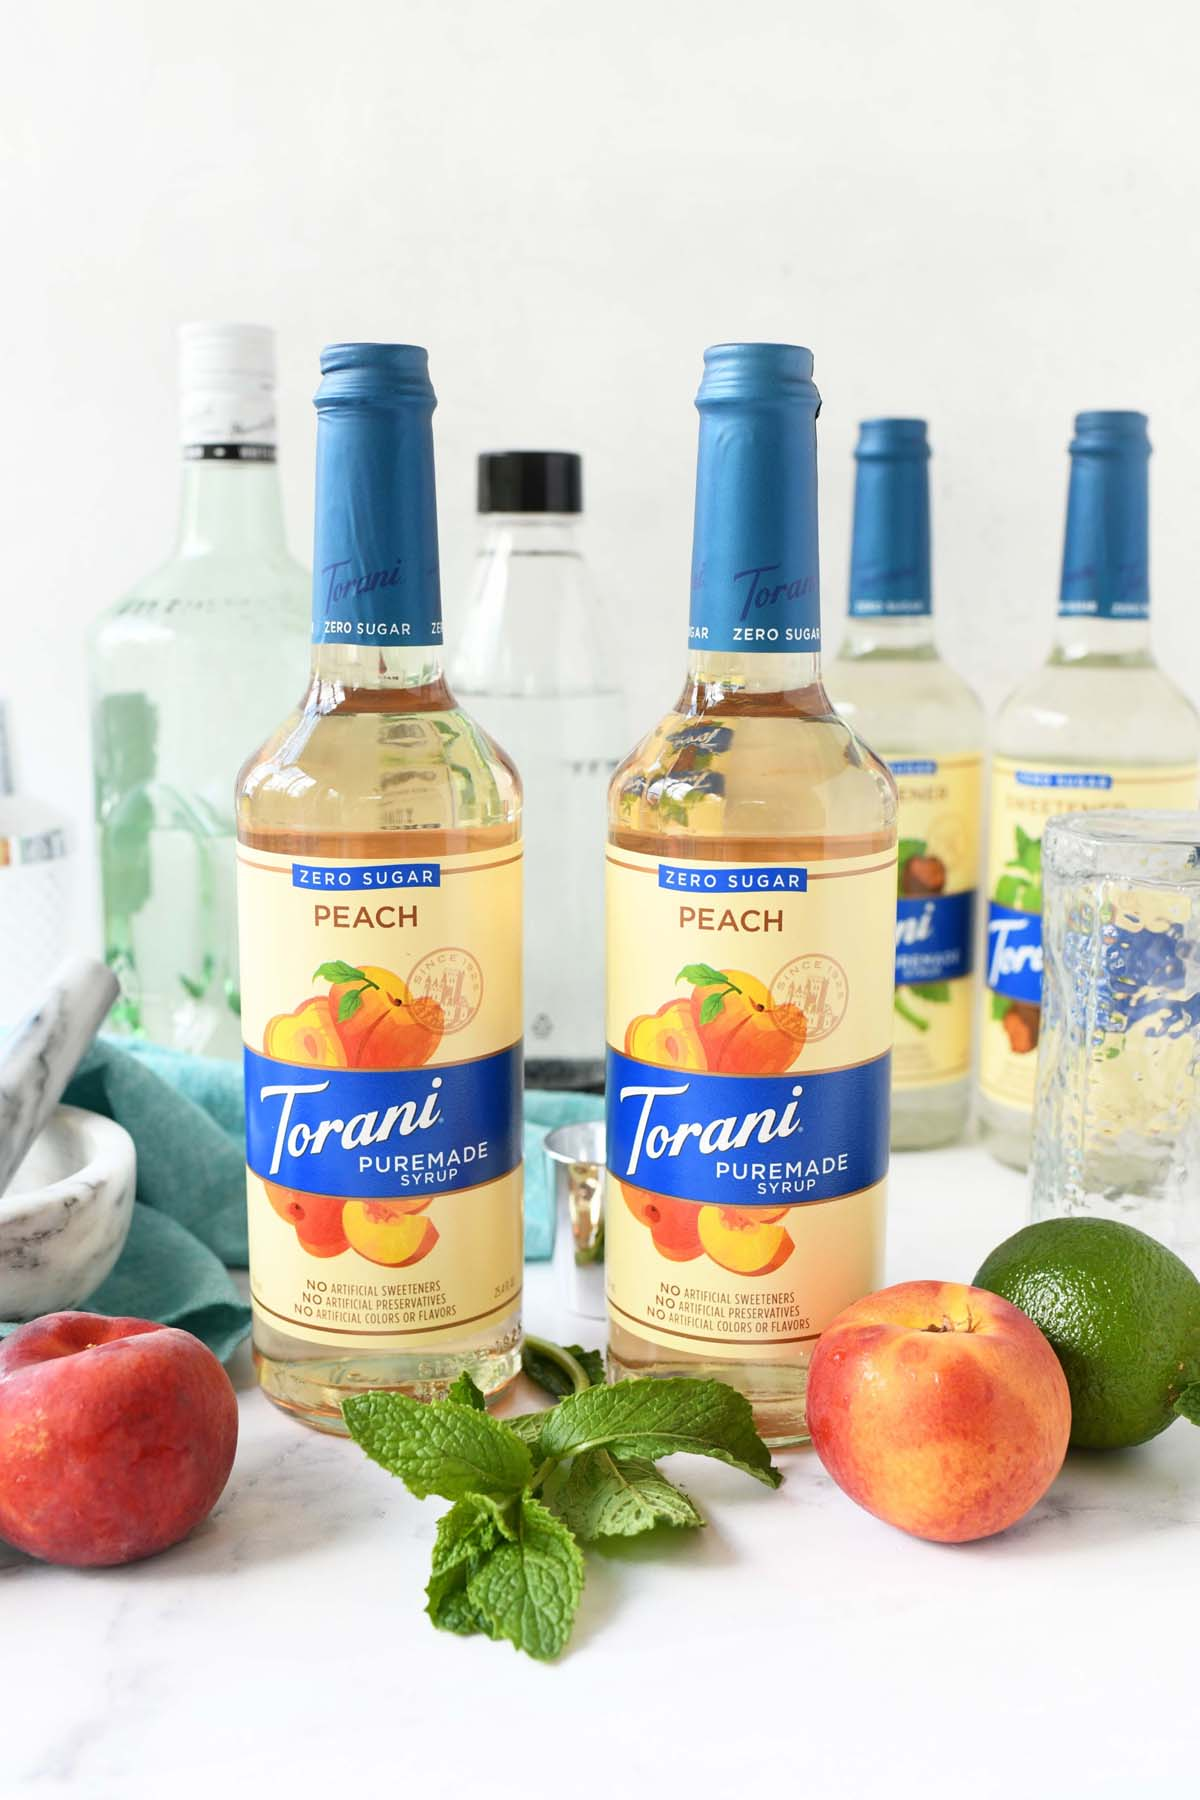 Two bottles of Torani Puremade near fresh peaches and lime.